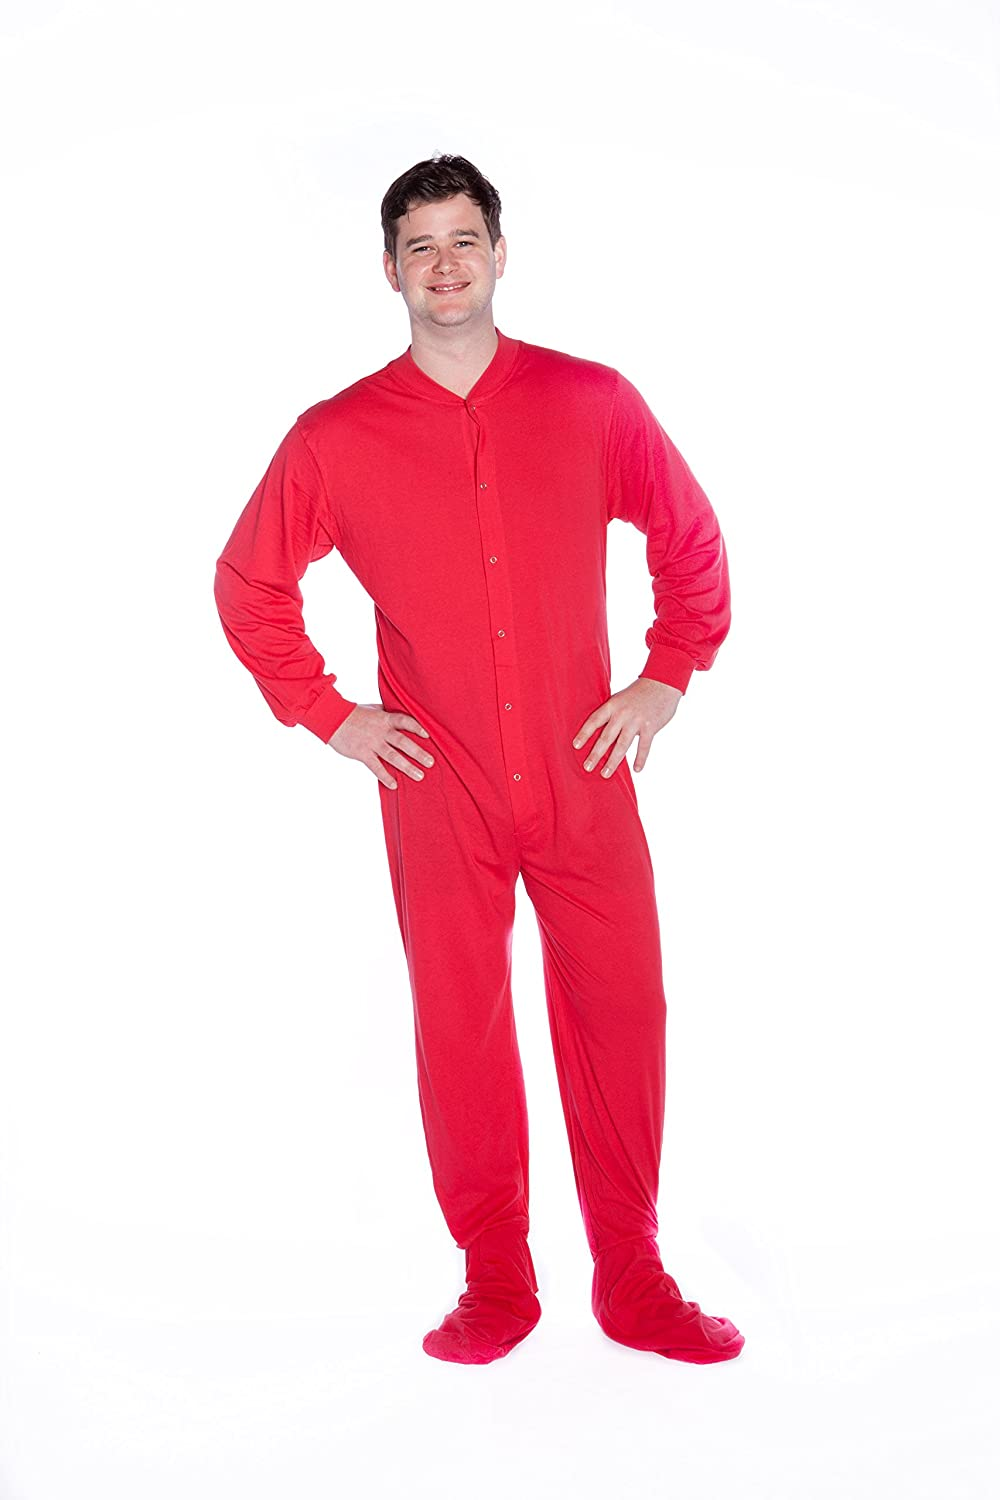 Amazon.com: Big Feet Pajama Red Cotton Jersey Knit Adult Footed ...